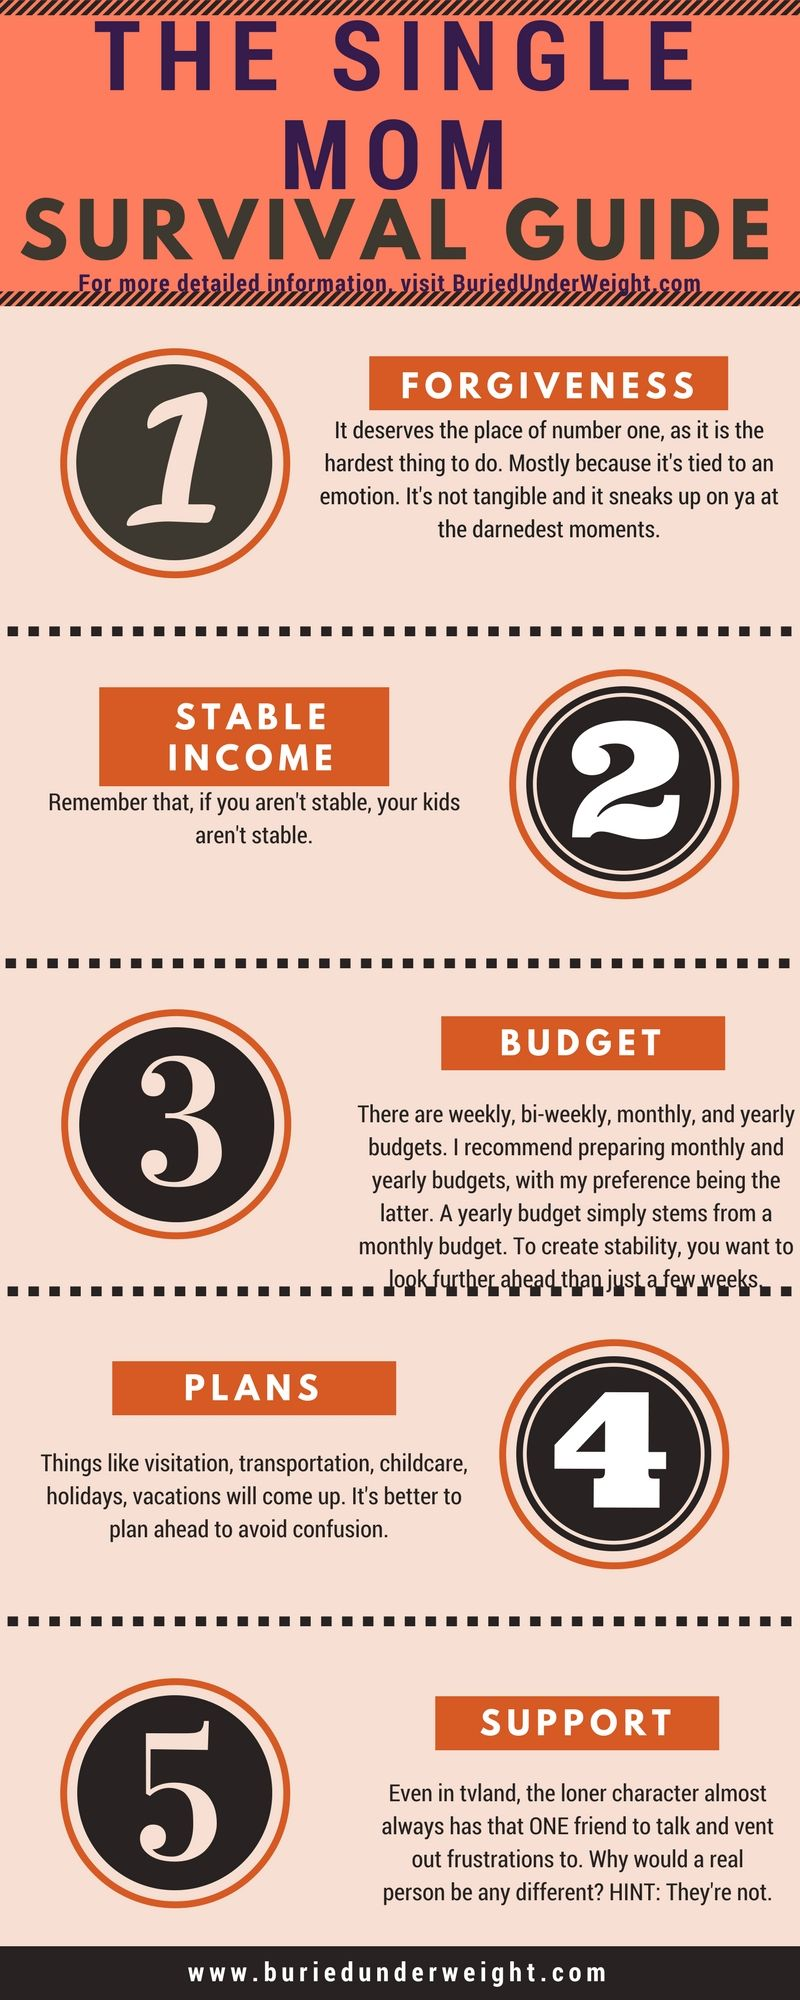 The Single Mom Survival Guide Infographic Gives Single Moms The Power Of Information Free Budget Single Mom Survival Single Mom Help Single Mom Survival Guide